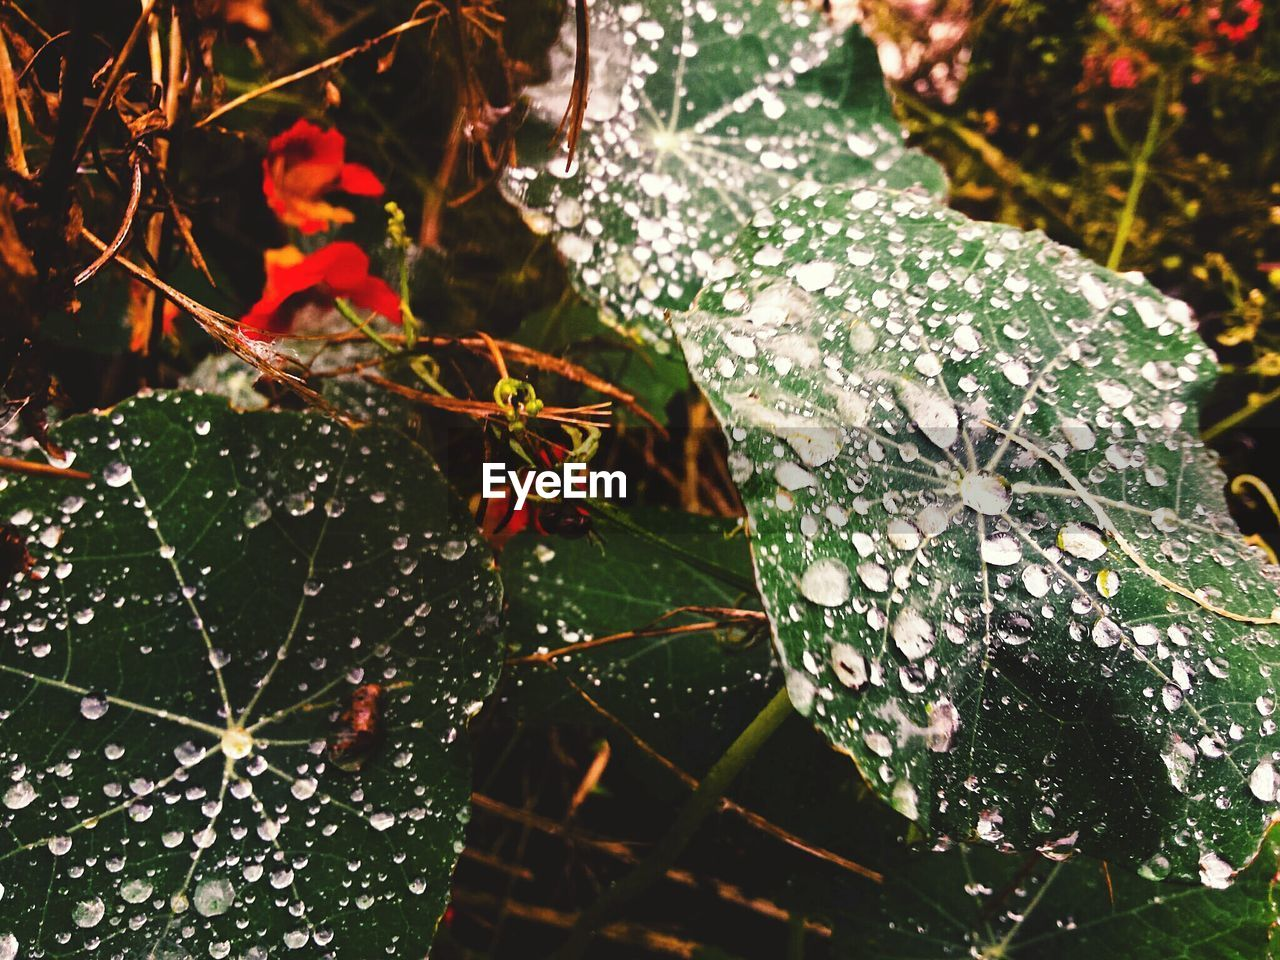 leaf, nature, close-up, drop, water, growth, beauty in nature, green color, day, fragility, spider web, focus on foreground, no people, outdoors, plant, web, cold temperature, freshness, branch